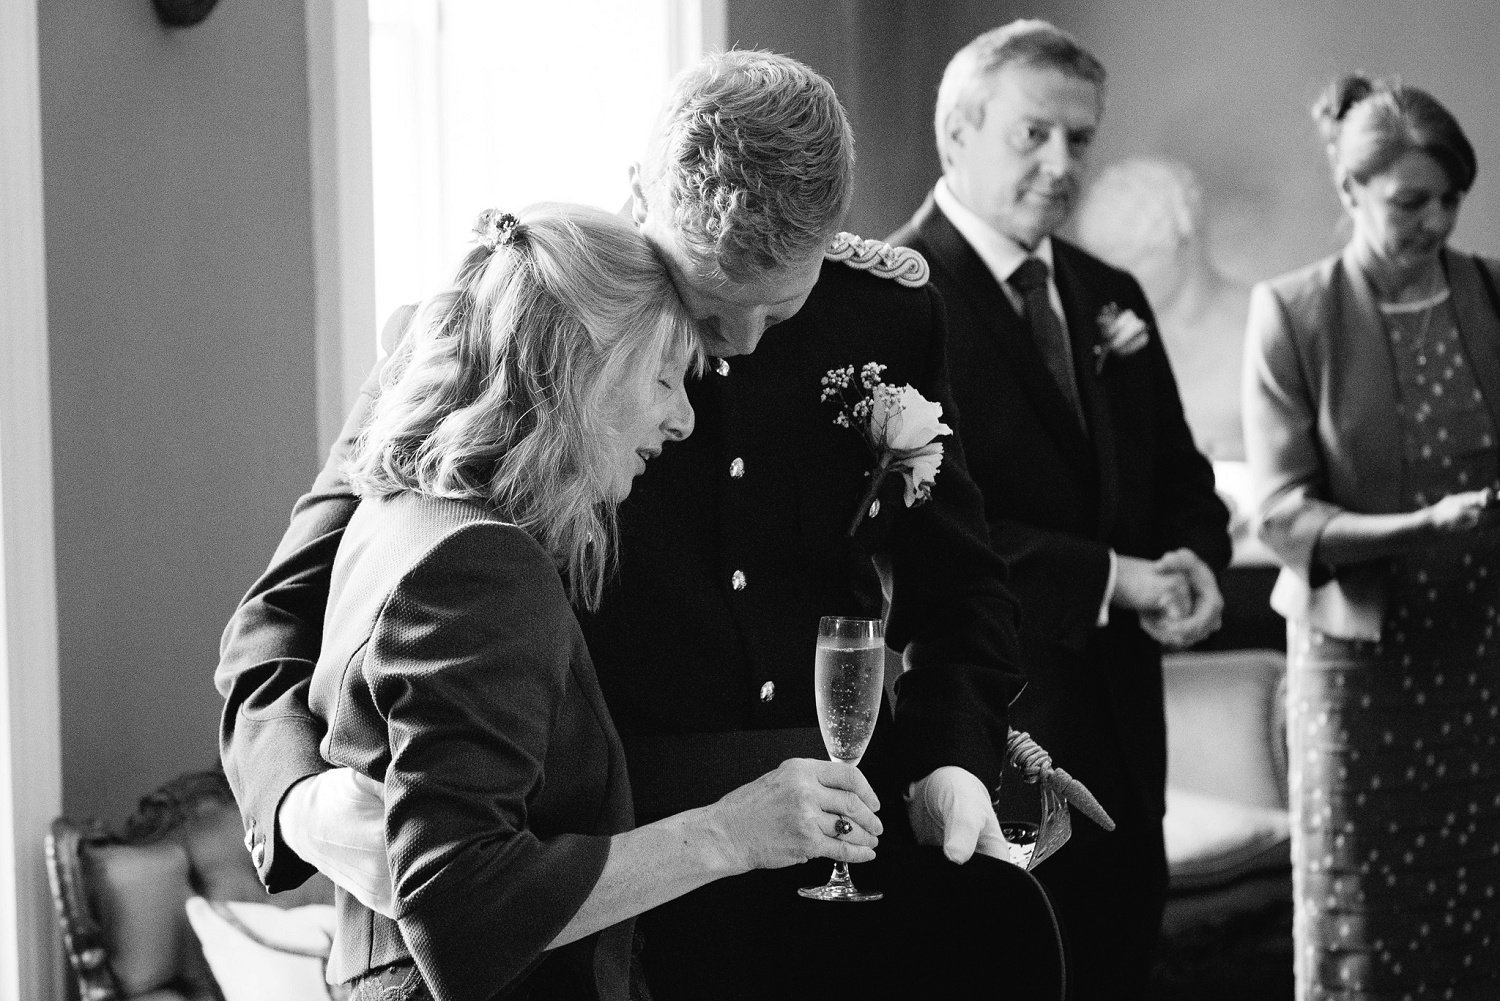 Candid moment between the groom and his mom at intimate wedding in Herefordshire